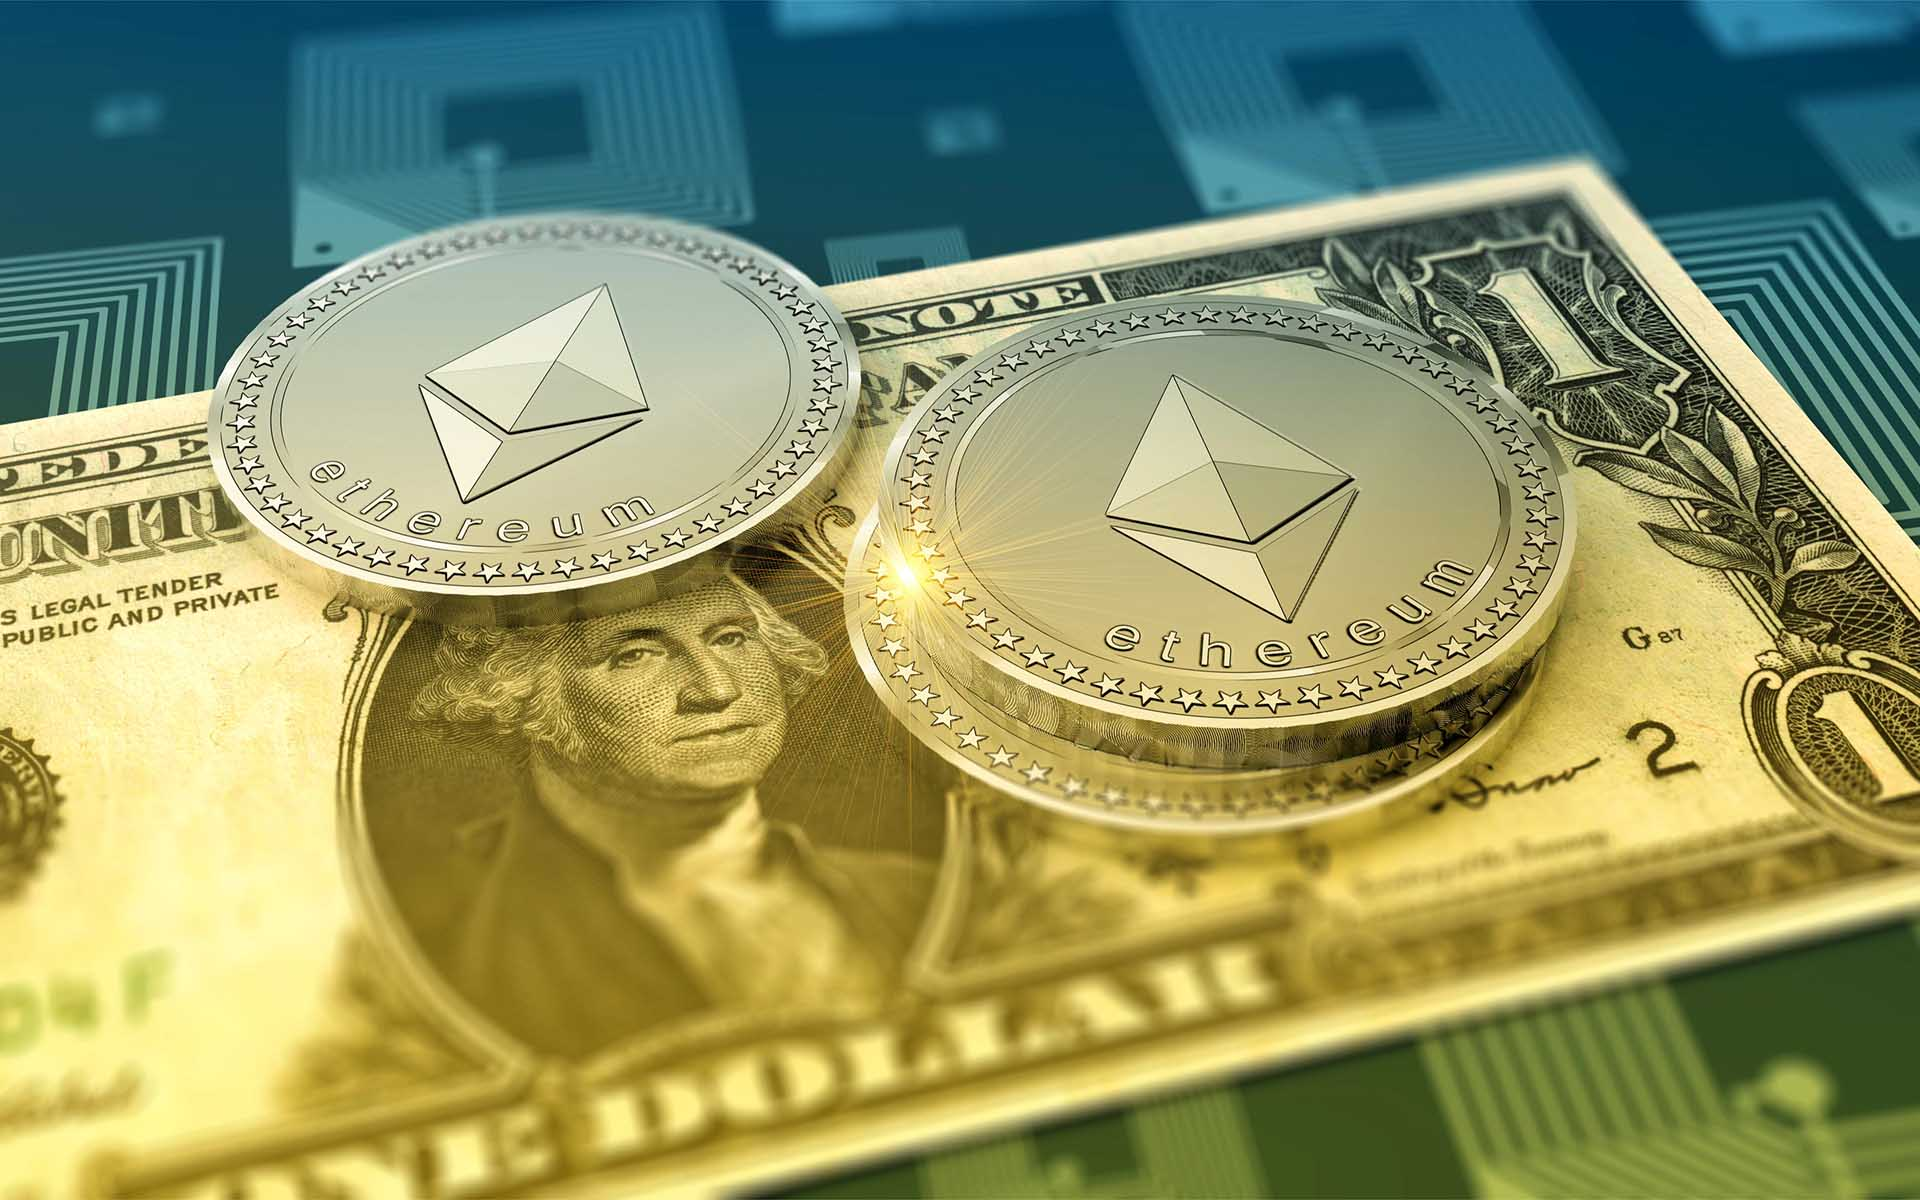 Why Invest in Ethereum?